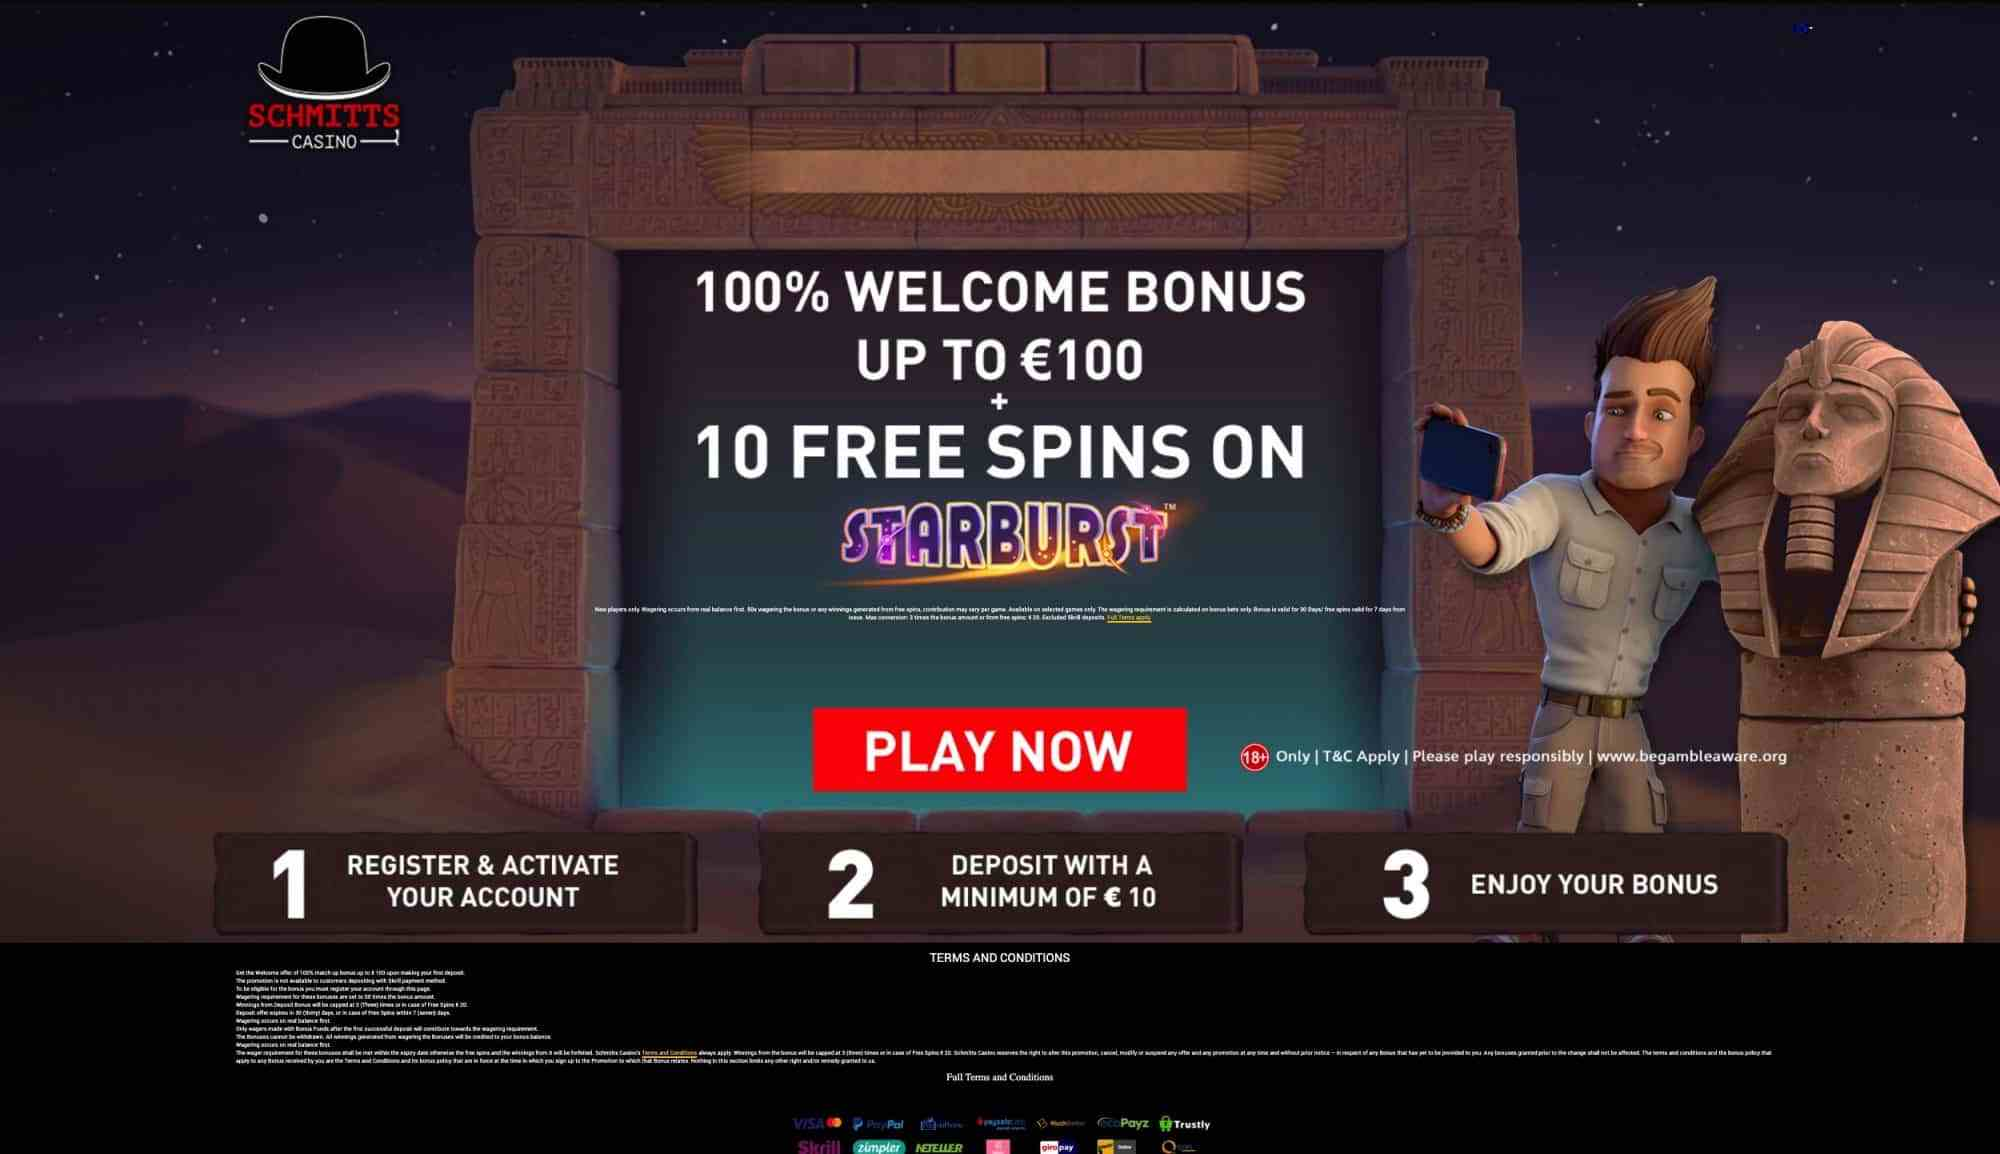 Schmitts Casino - Get 100% match bonus plus 10 free spins